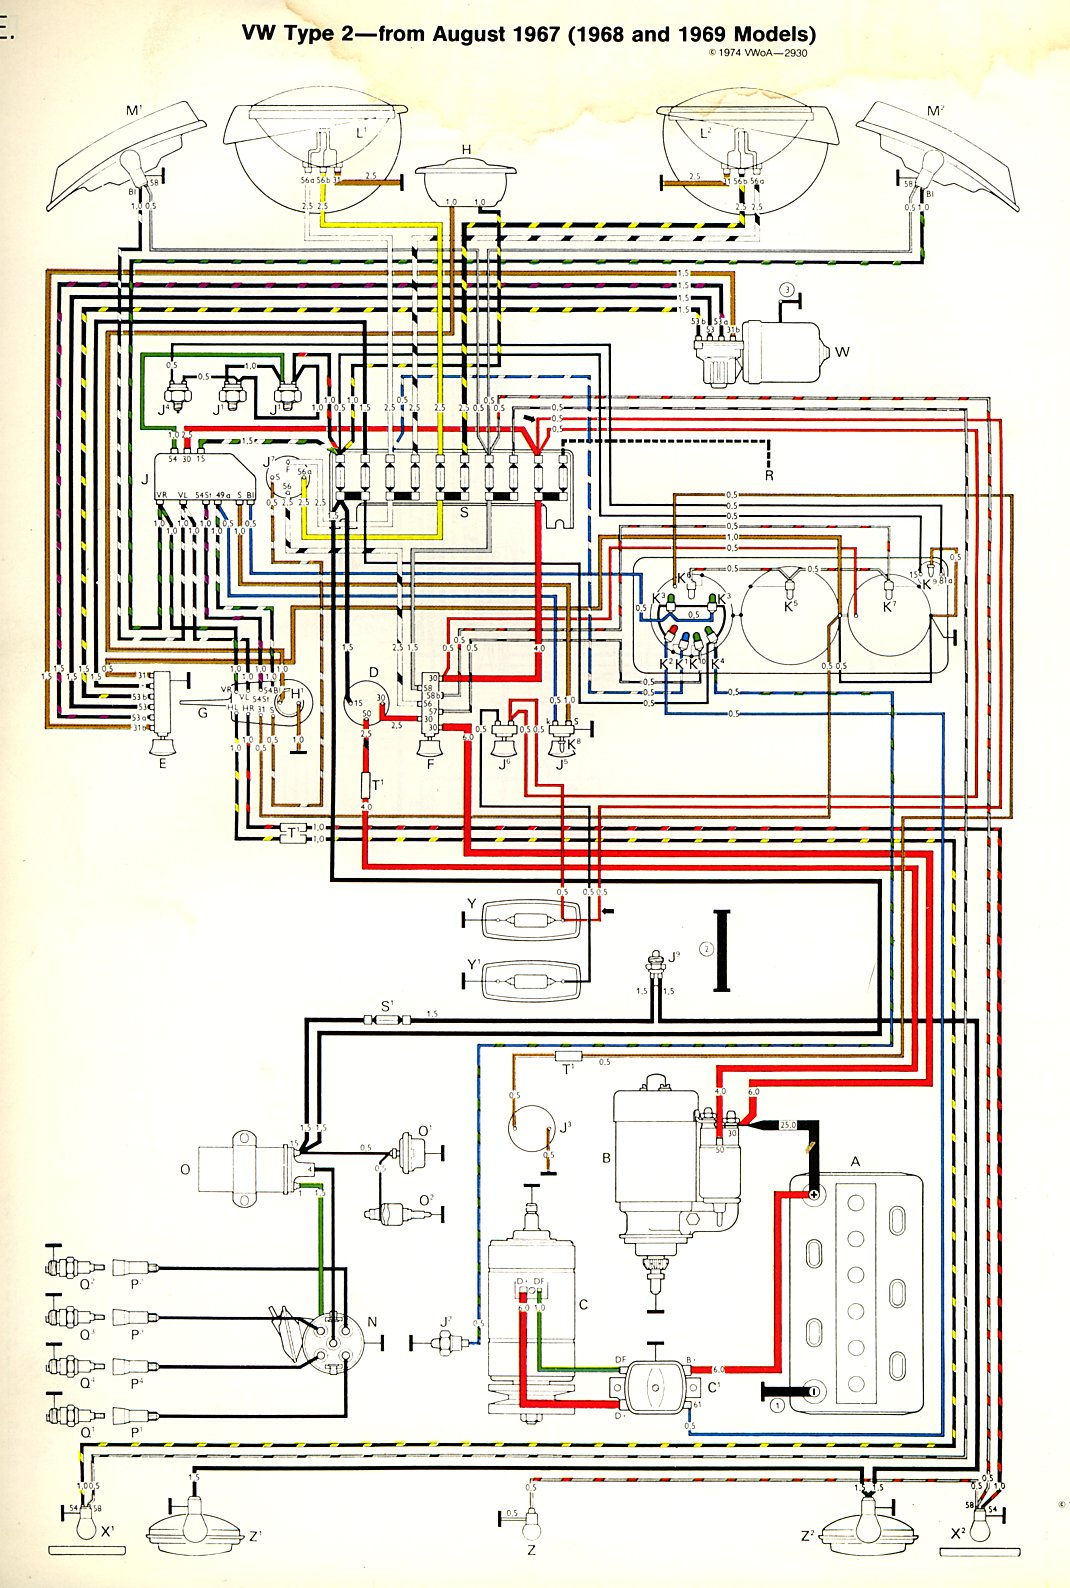 baybus_6869a vw bus wiring diagram 1965 vw bus wiring diagram \u2022 wiring diagrams VW Alternator Hook Up at virtualis.co